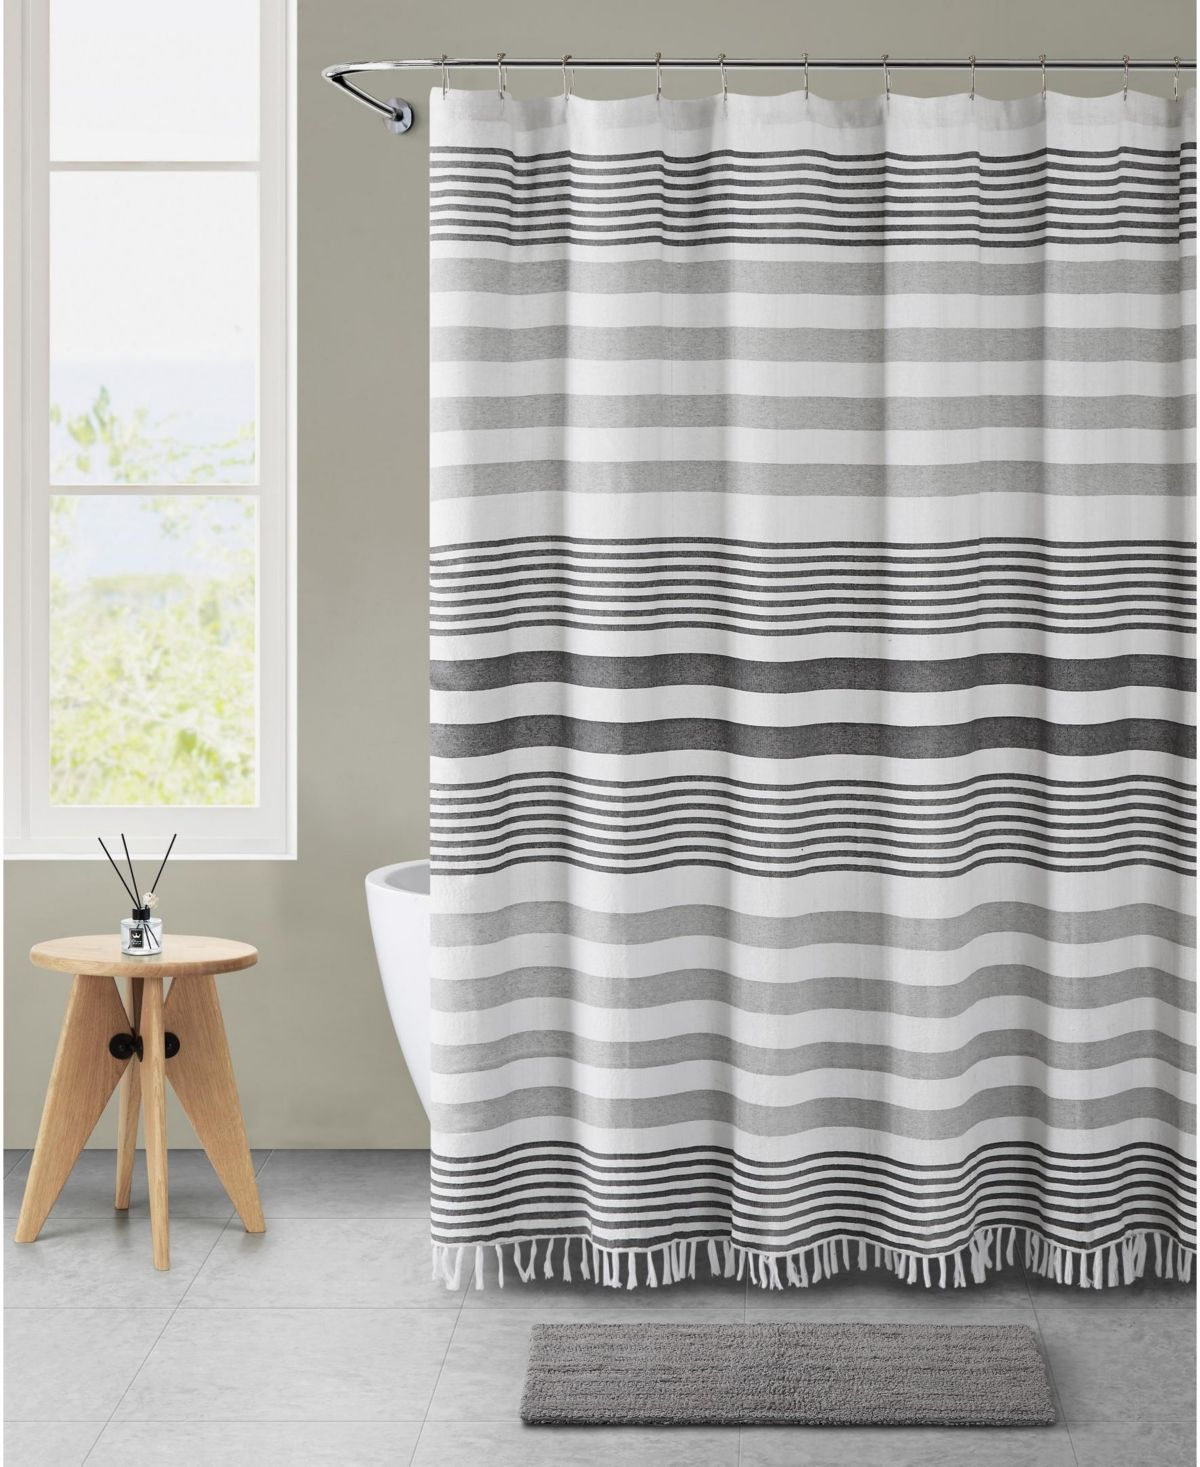 Vcny Home Marcy 14 Pc Bath Bundle Reviews Shower Curtains Bed Bath Macy S Fabric Shower Curtains Curtains Shower